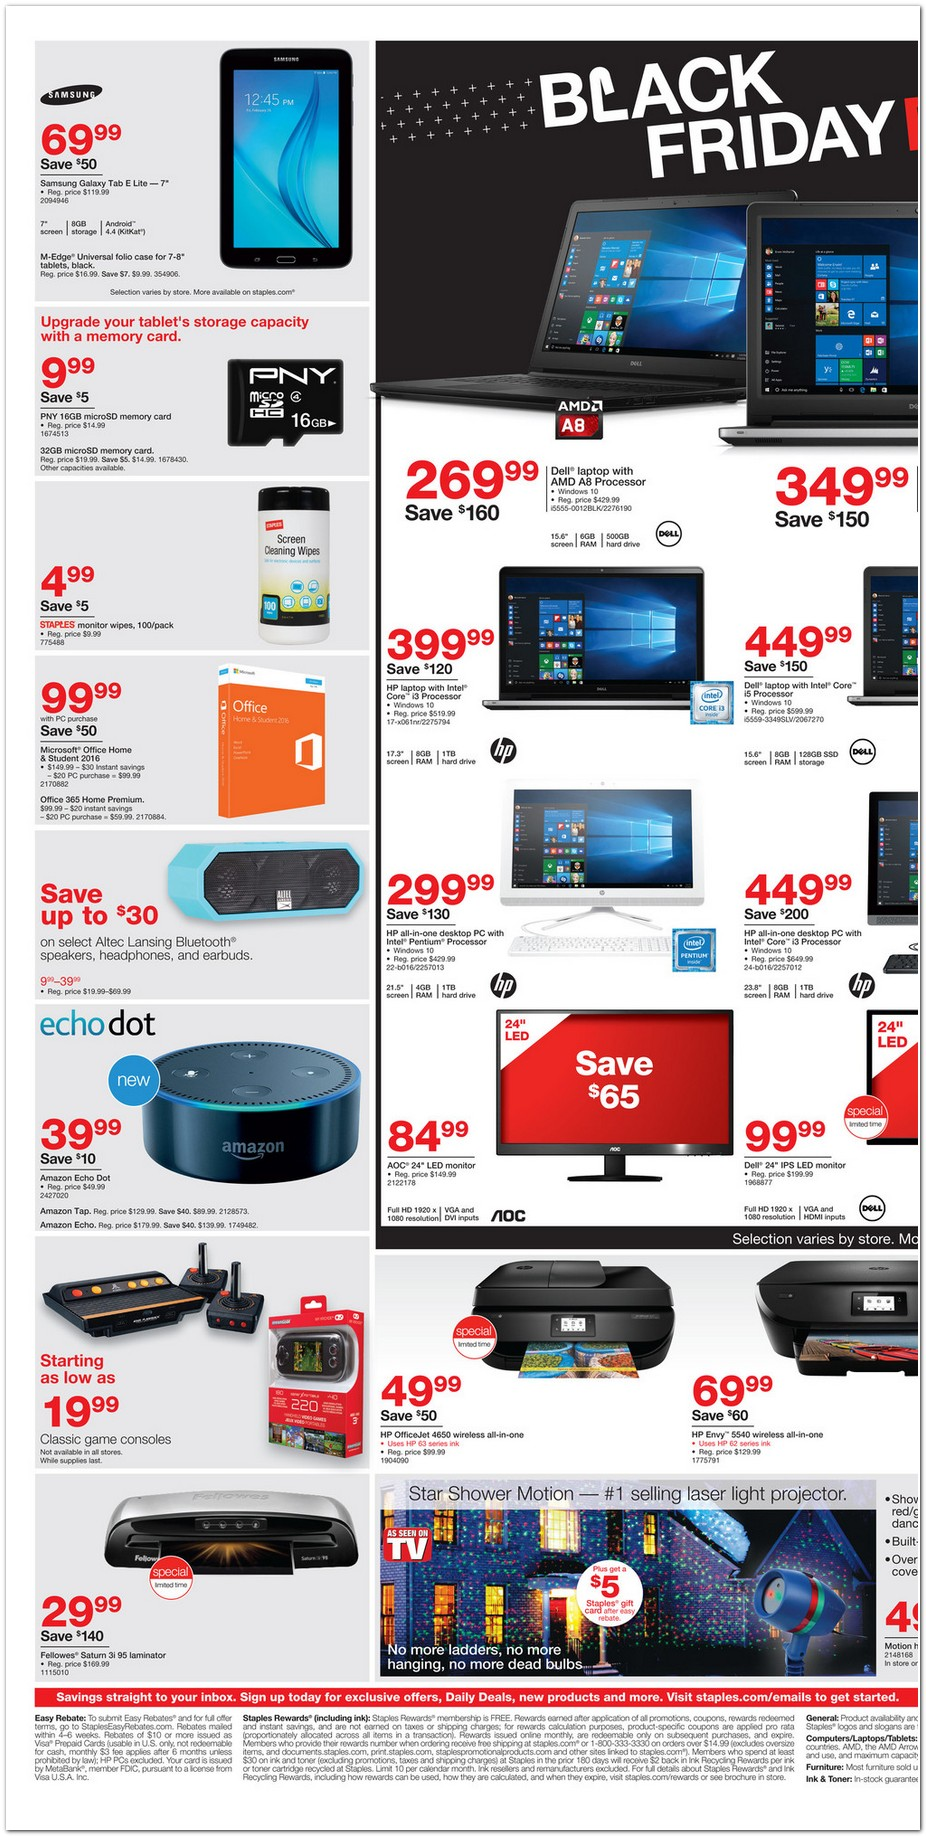 staples-black-friday-2016-ad-scan-p00002